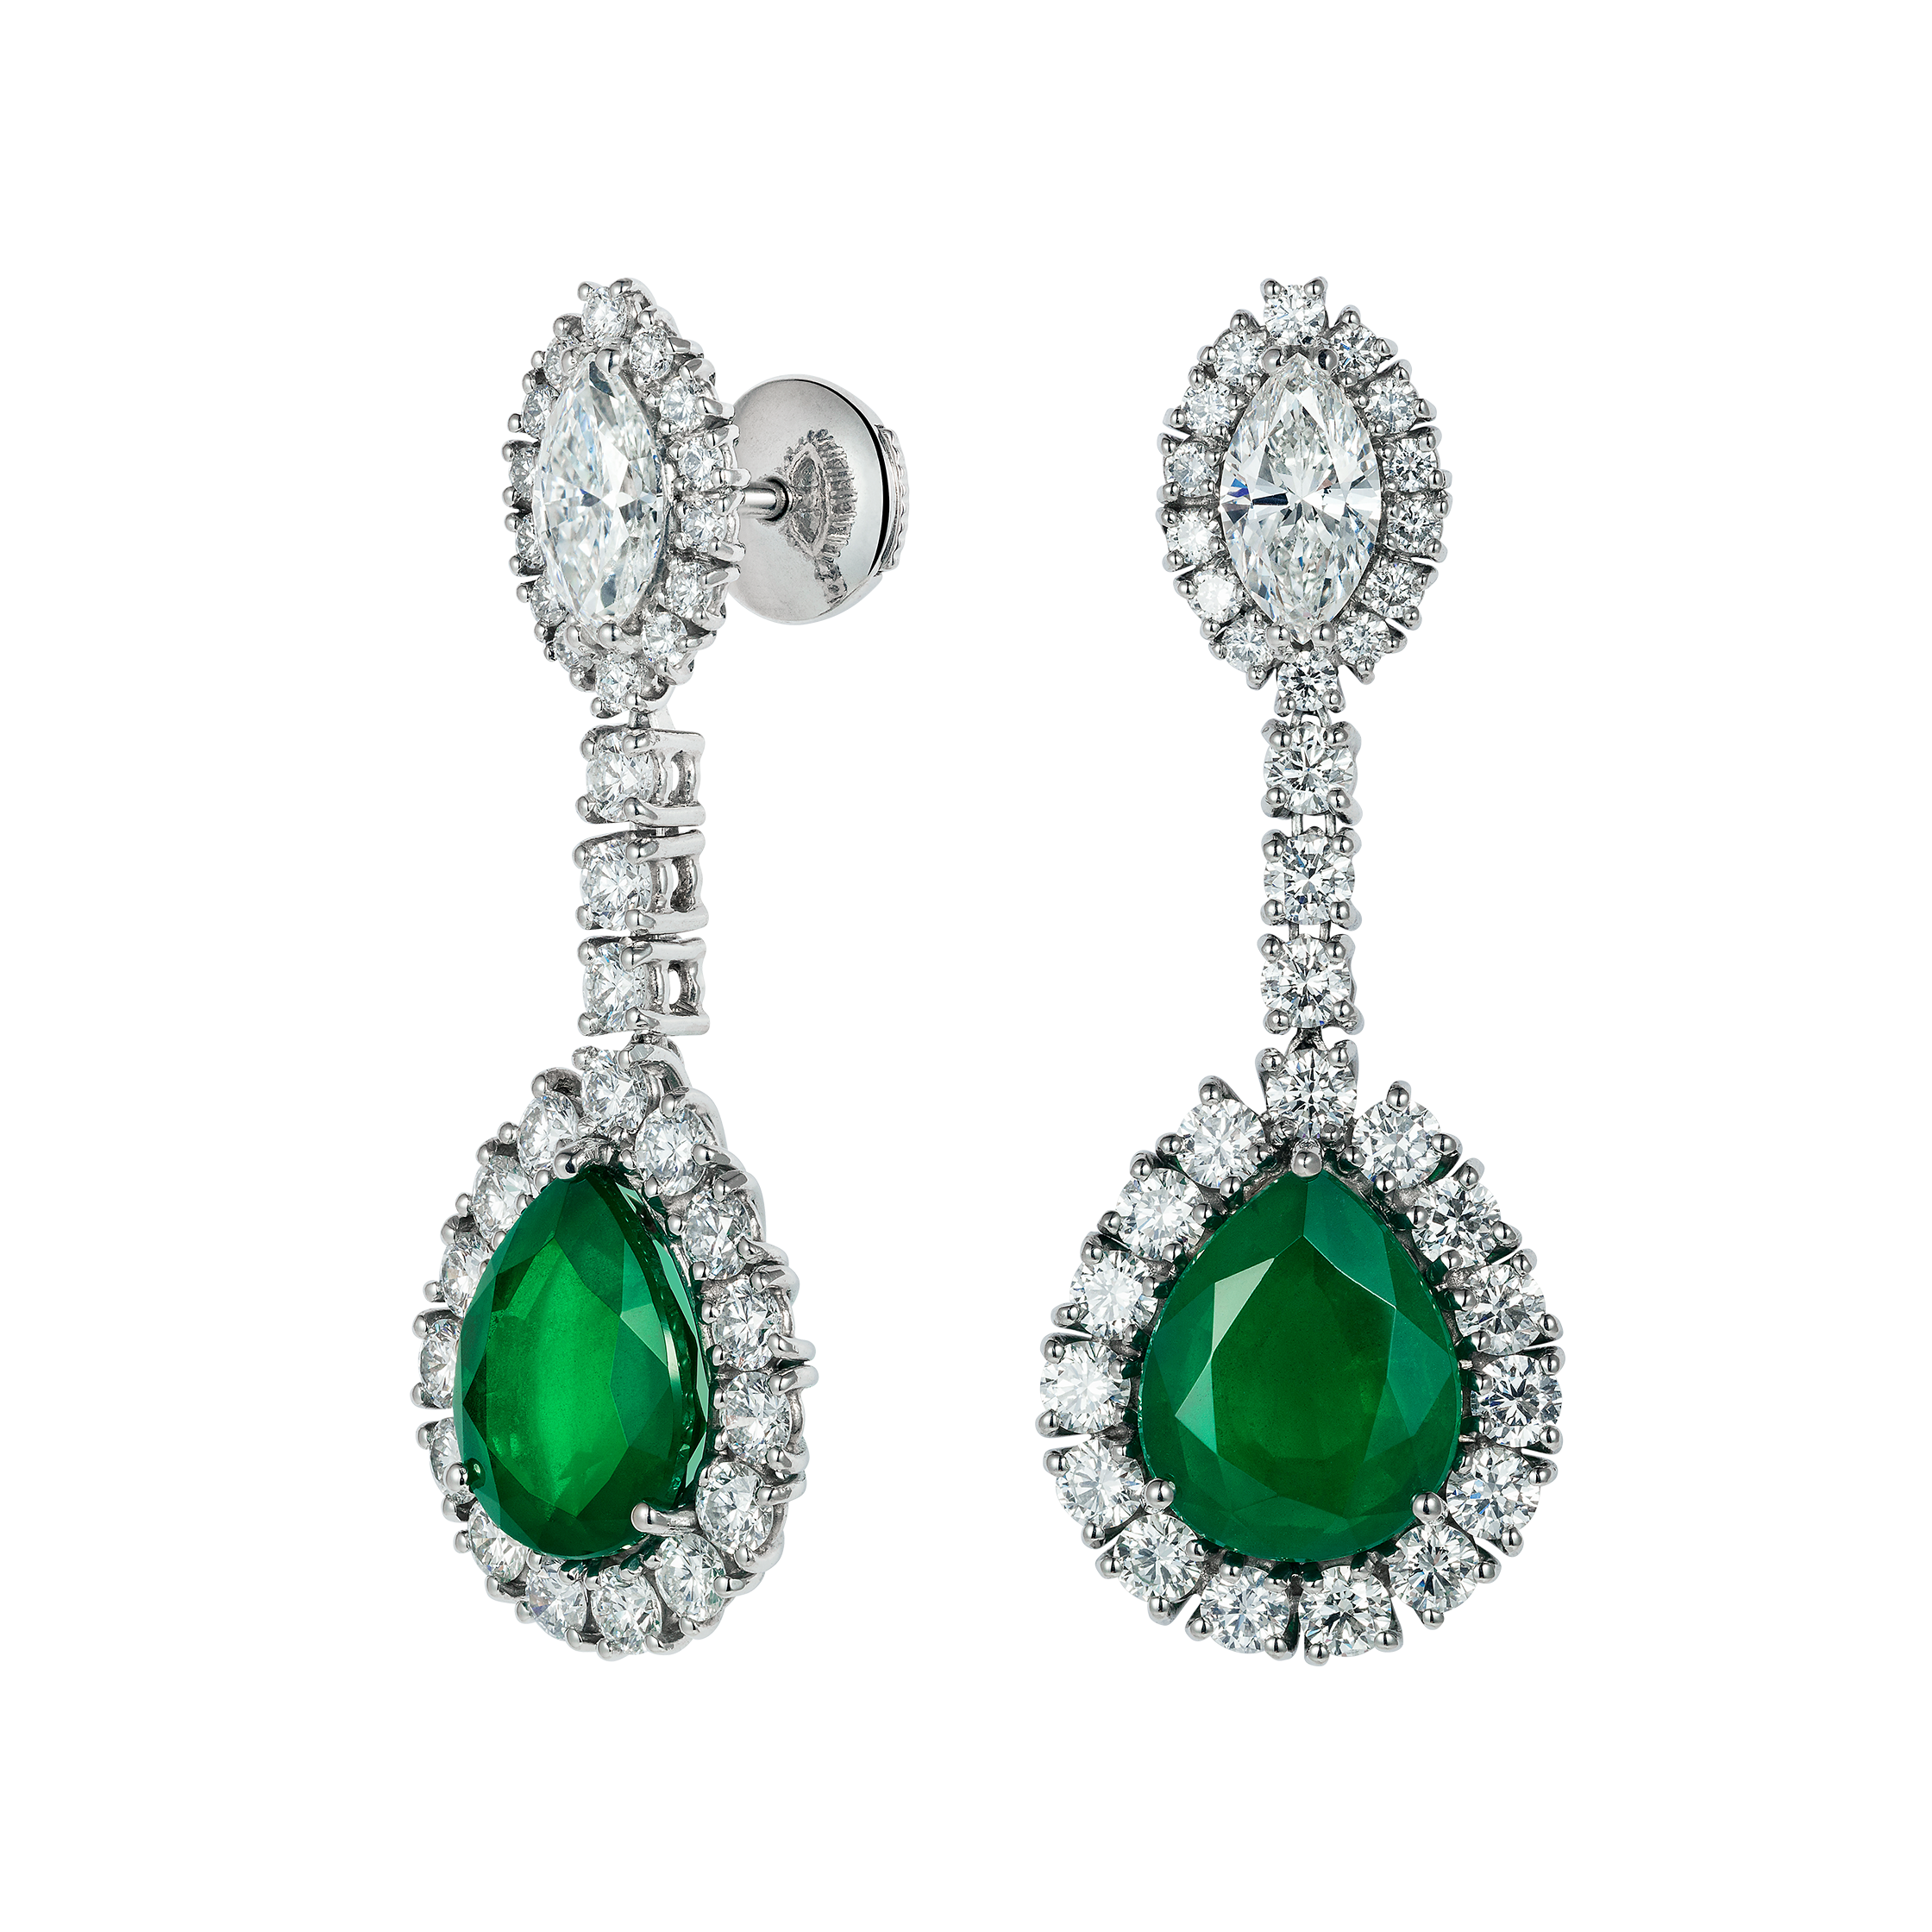 switzerland jewellery little earrings two emerald stone products simulated